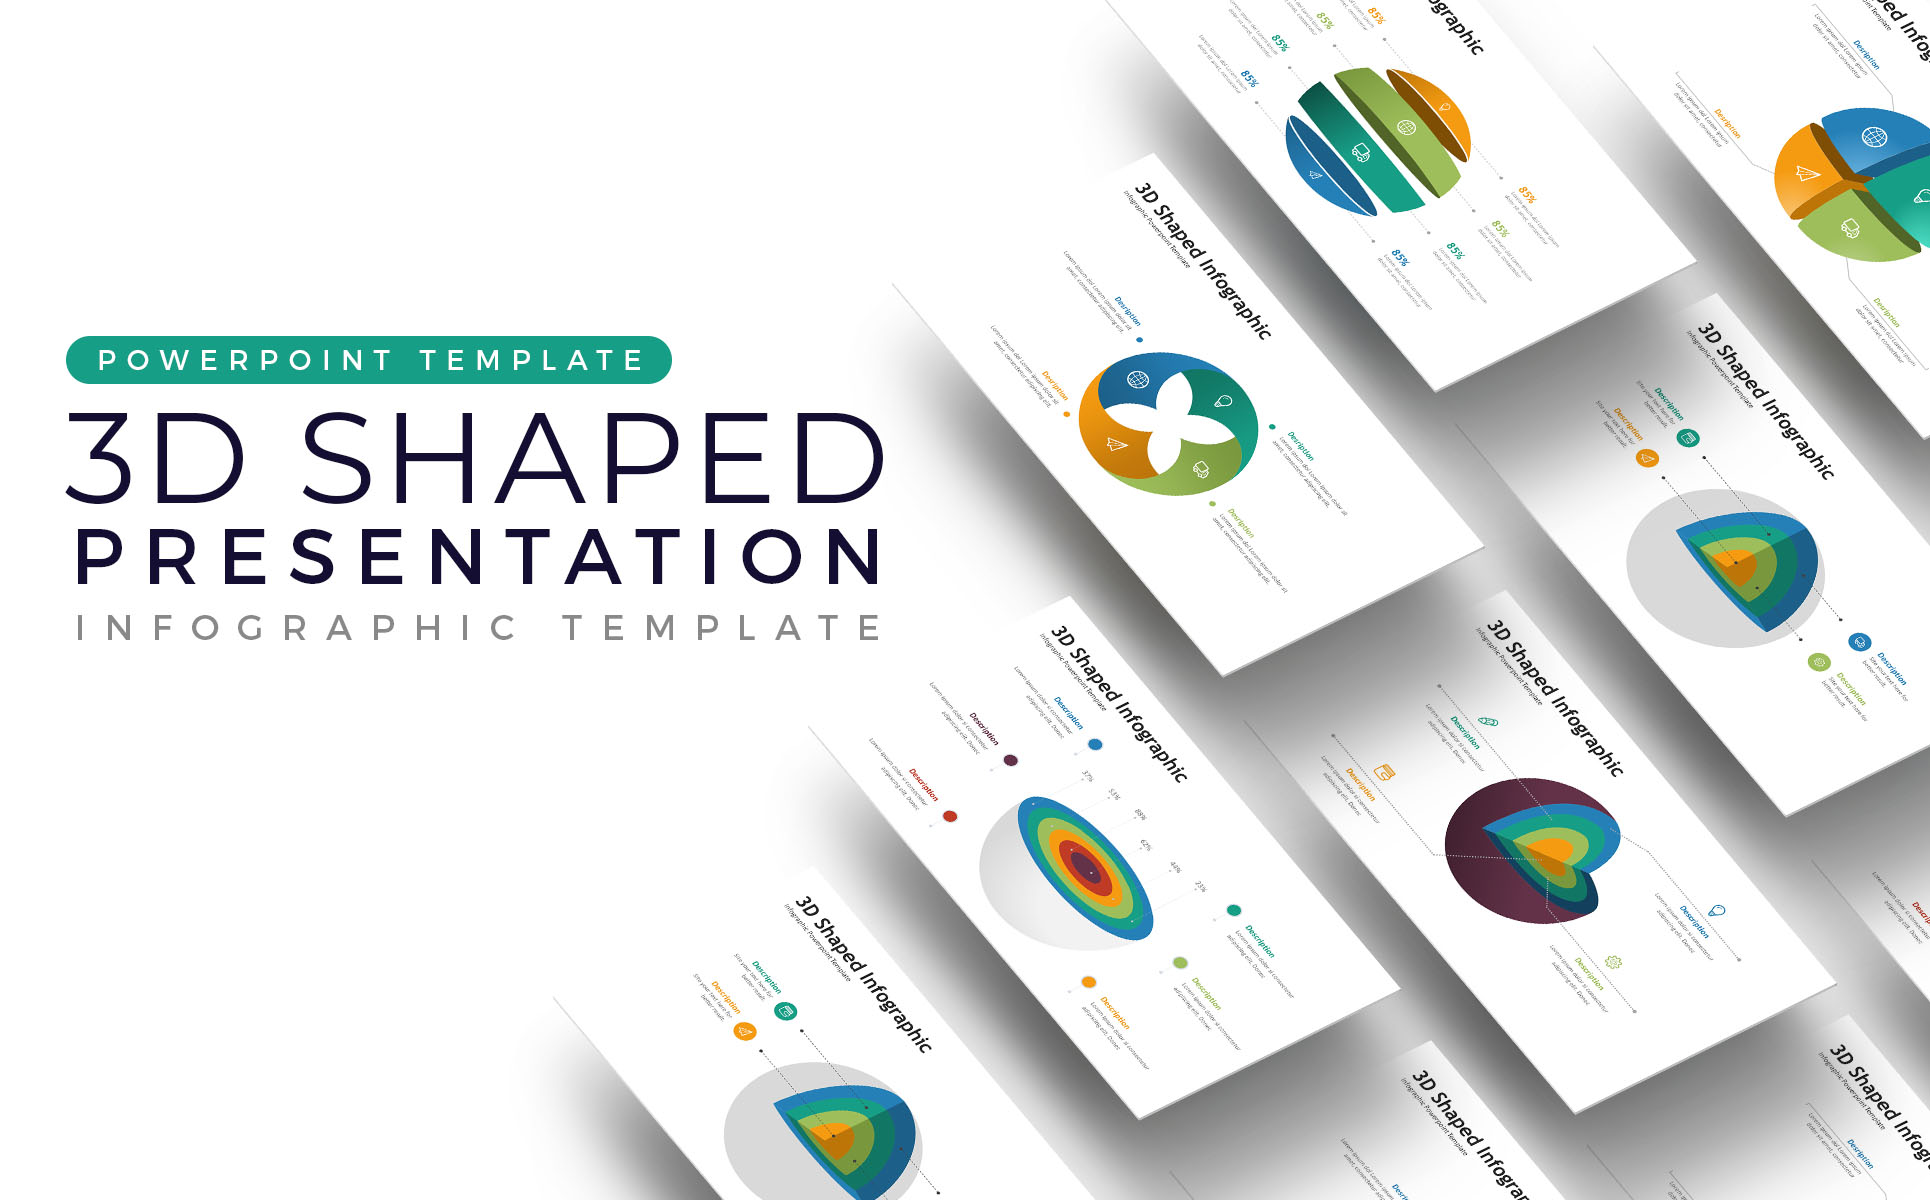 3D Infographic Presentation PowerPoint Template